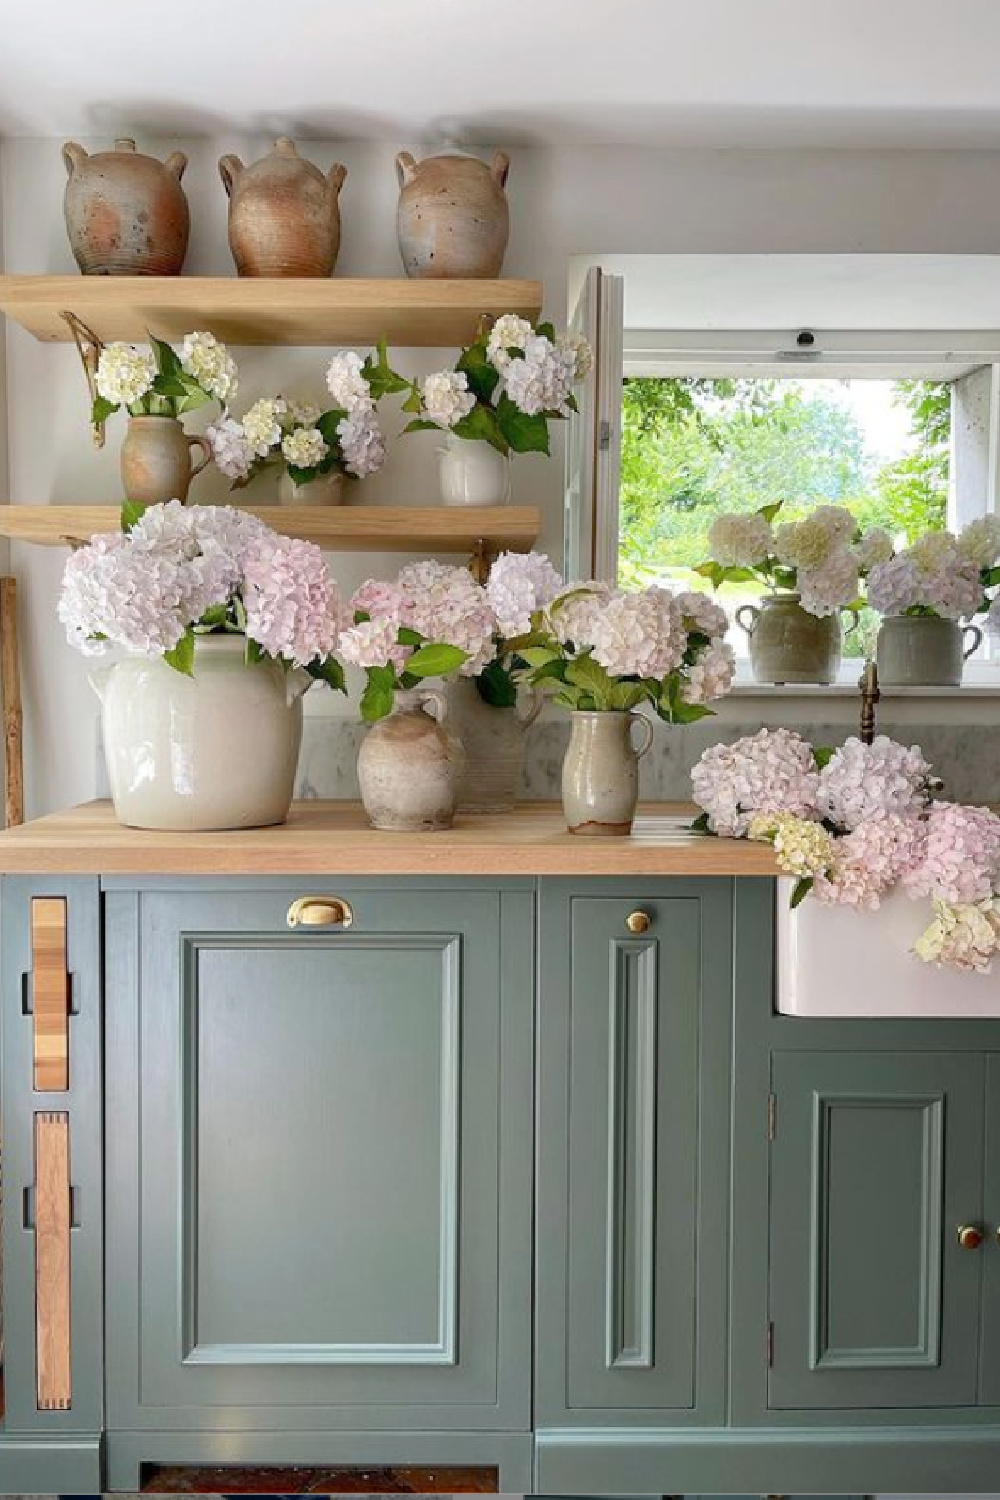 Green Smoke (Farrow & Ball) paint color on cabinets in a rustic elegant French farmhouse kitchen by Vivi et Margot. #frenchkitchen #greensmoke #paintcolors #frenchcountrykitchen